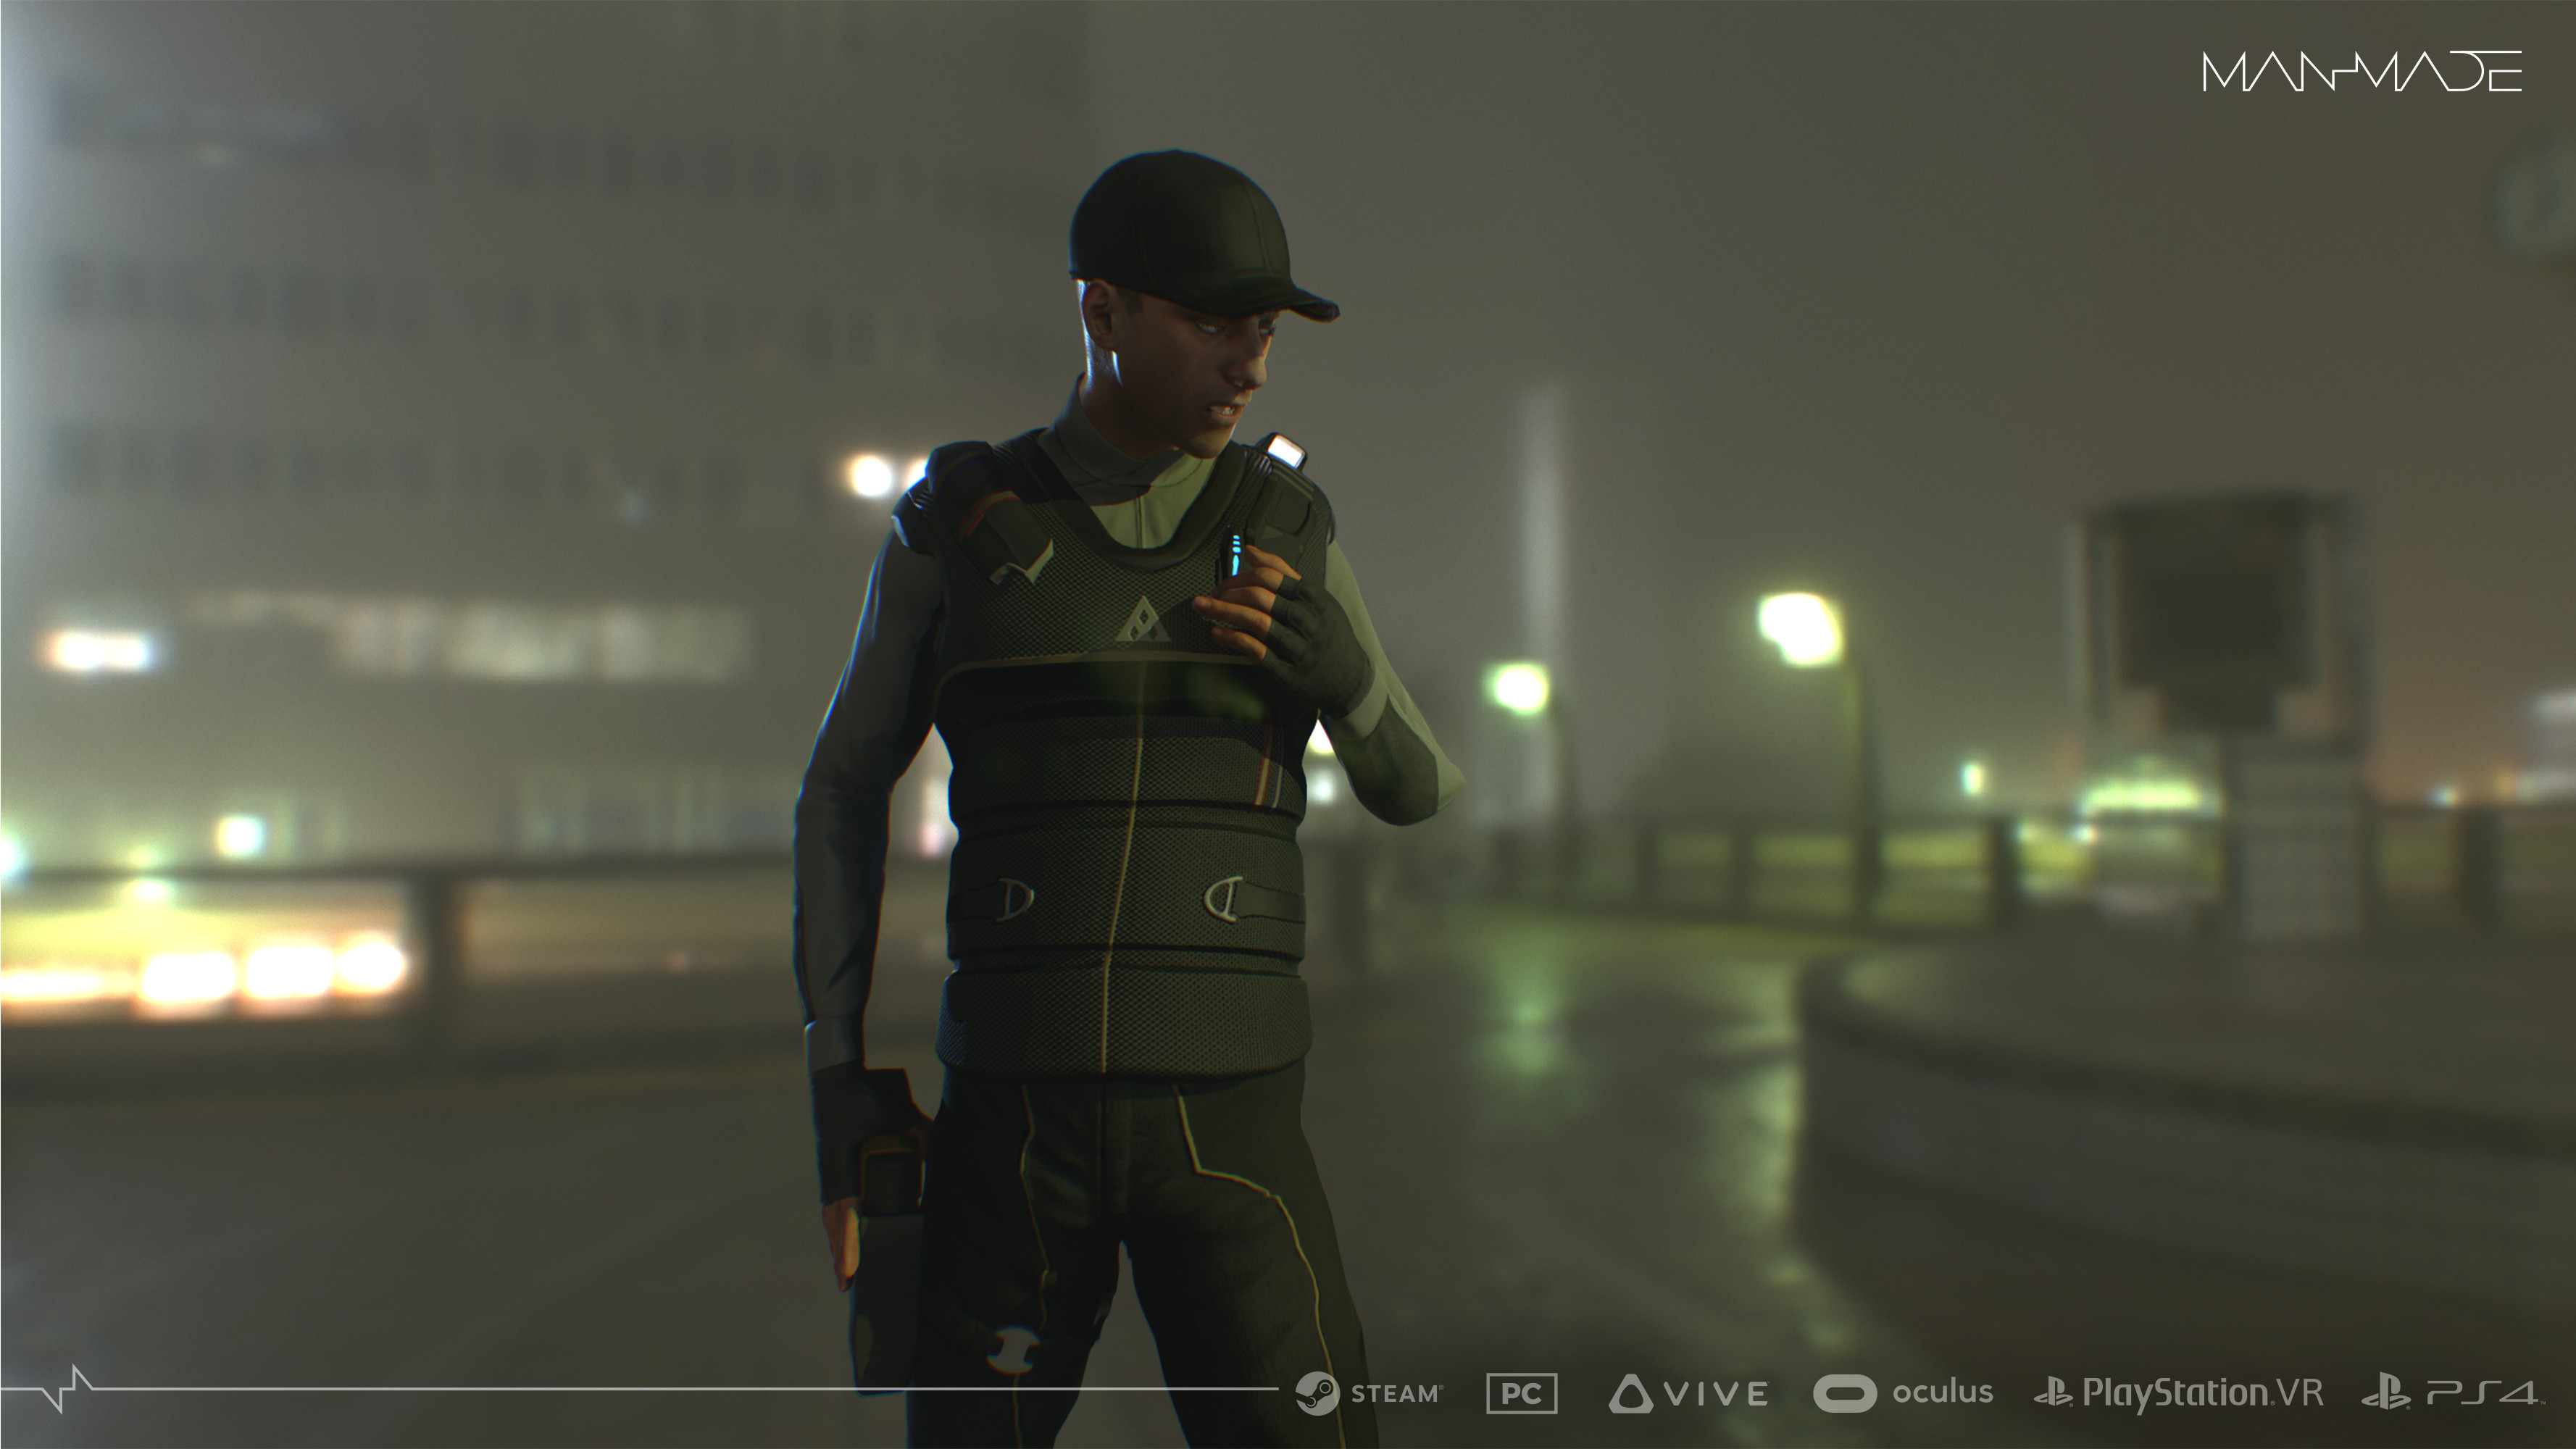 Security Marmoset Render for Materials and Mood